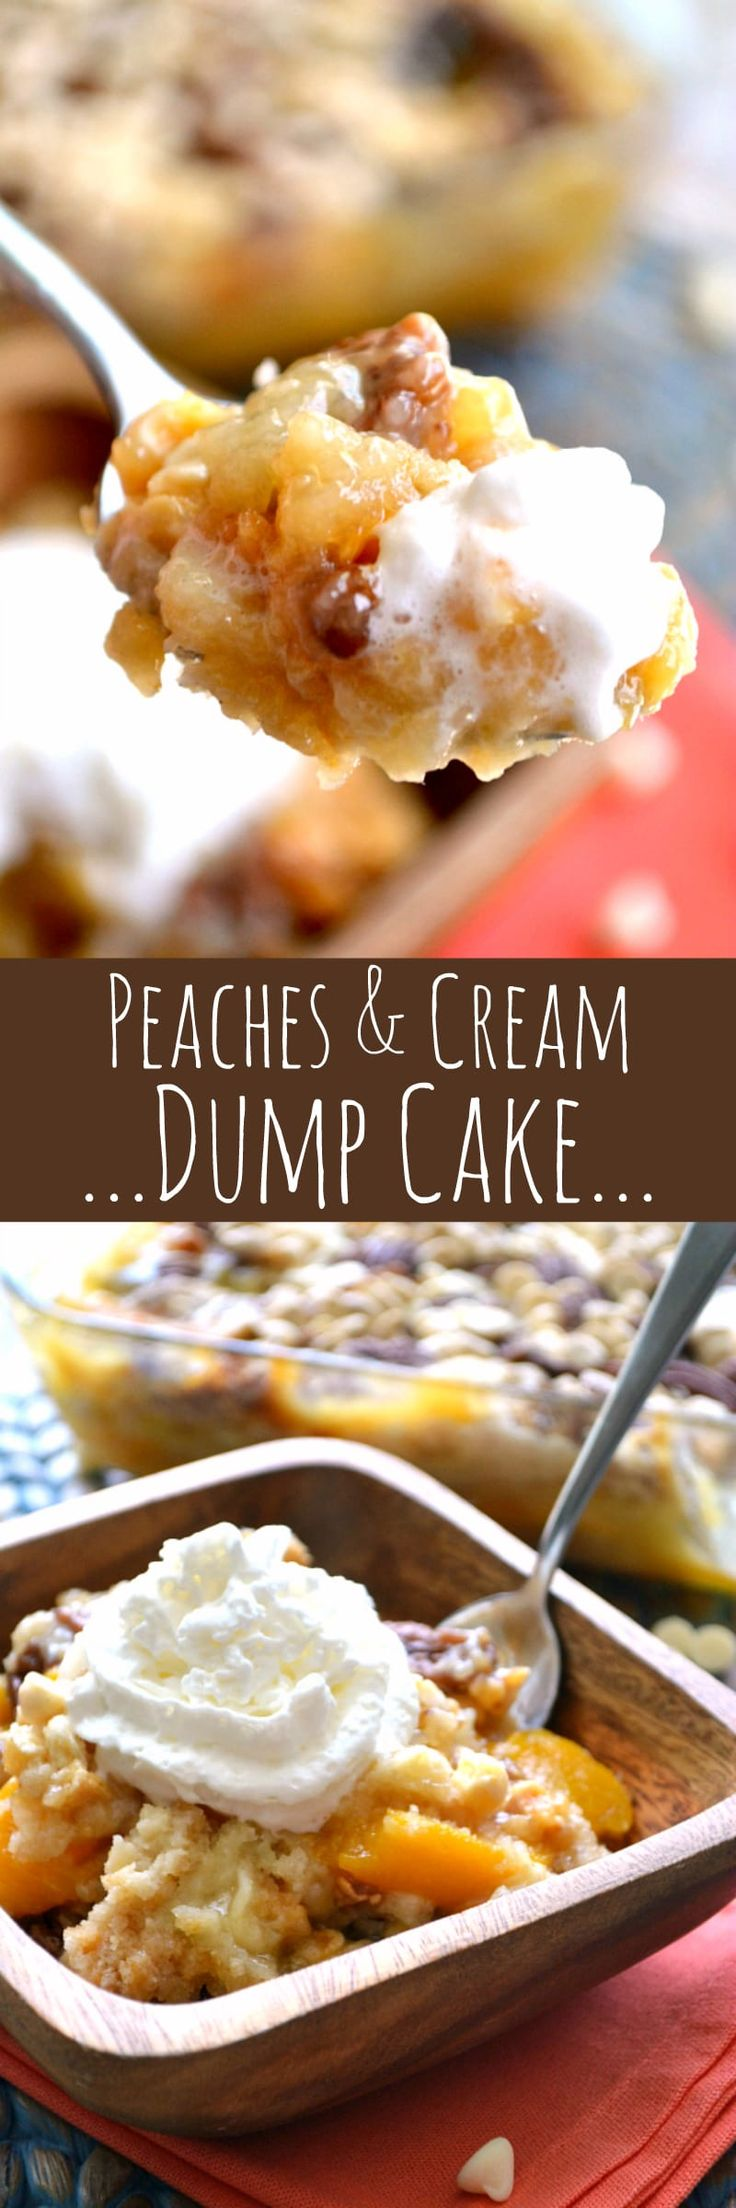 Peaches & Cream Dump Cake 1 box white or yellow cake mix  1 can peach pie filling  1 (15 oz.) can sliced peaches in light syrup (don't drain)  1 stick unsalted butter, cut in pieces  1 c. white chocolate chips  1 c. pecan halves (optional)